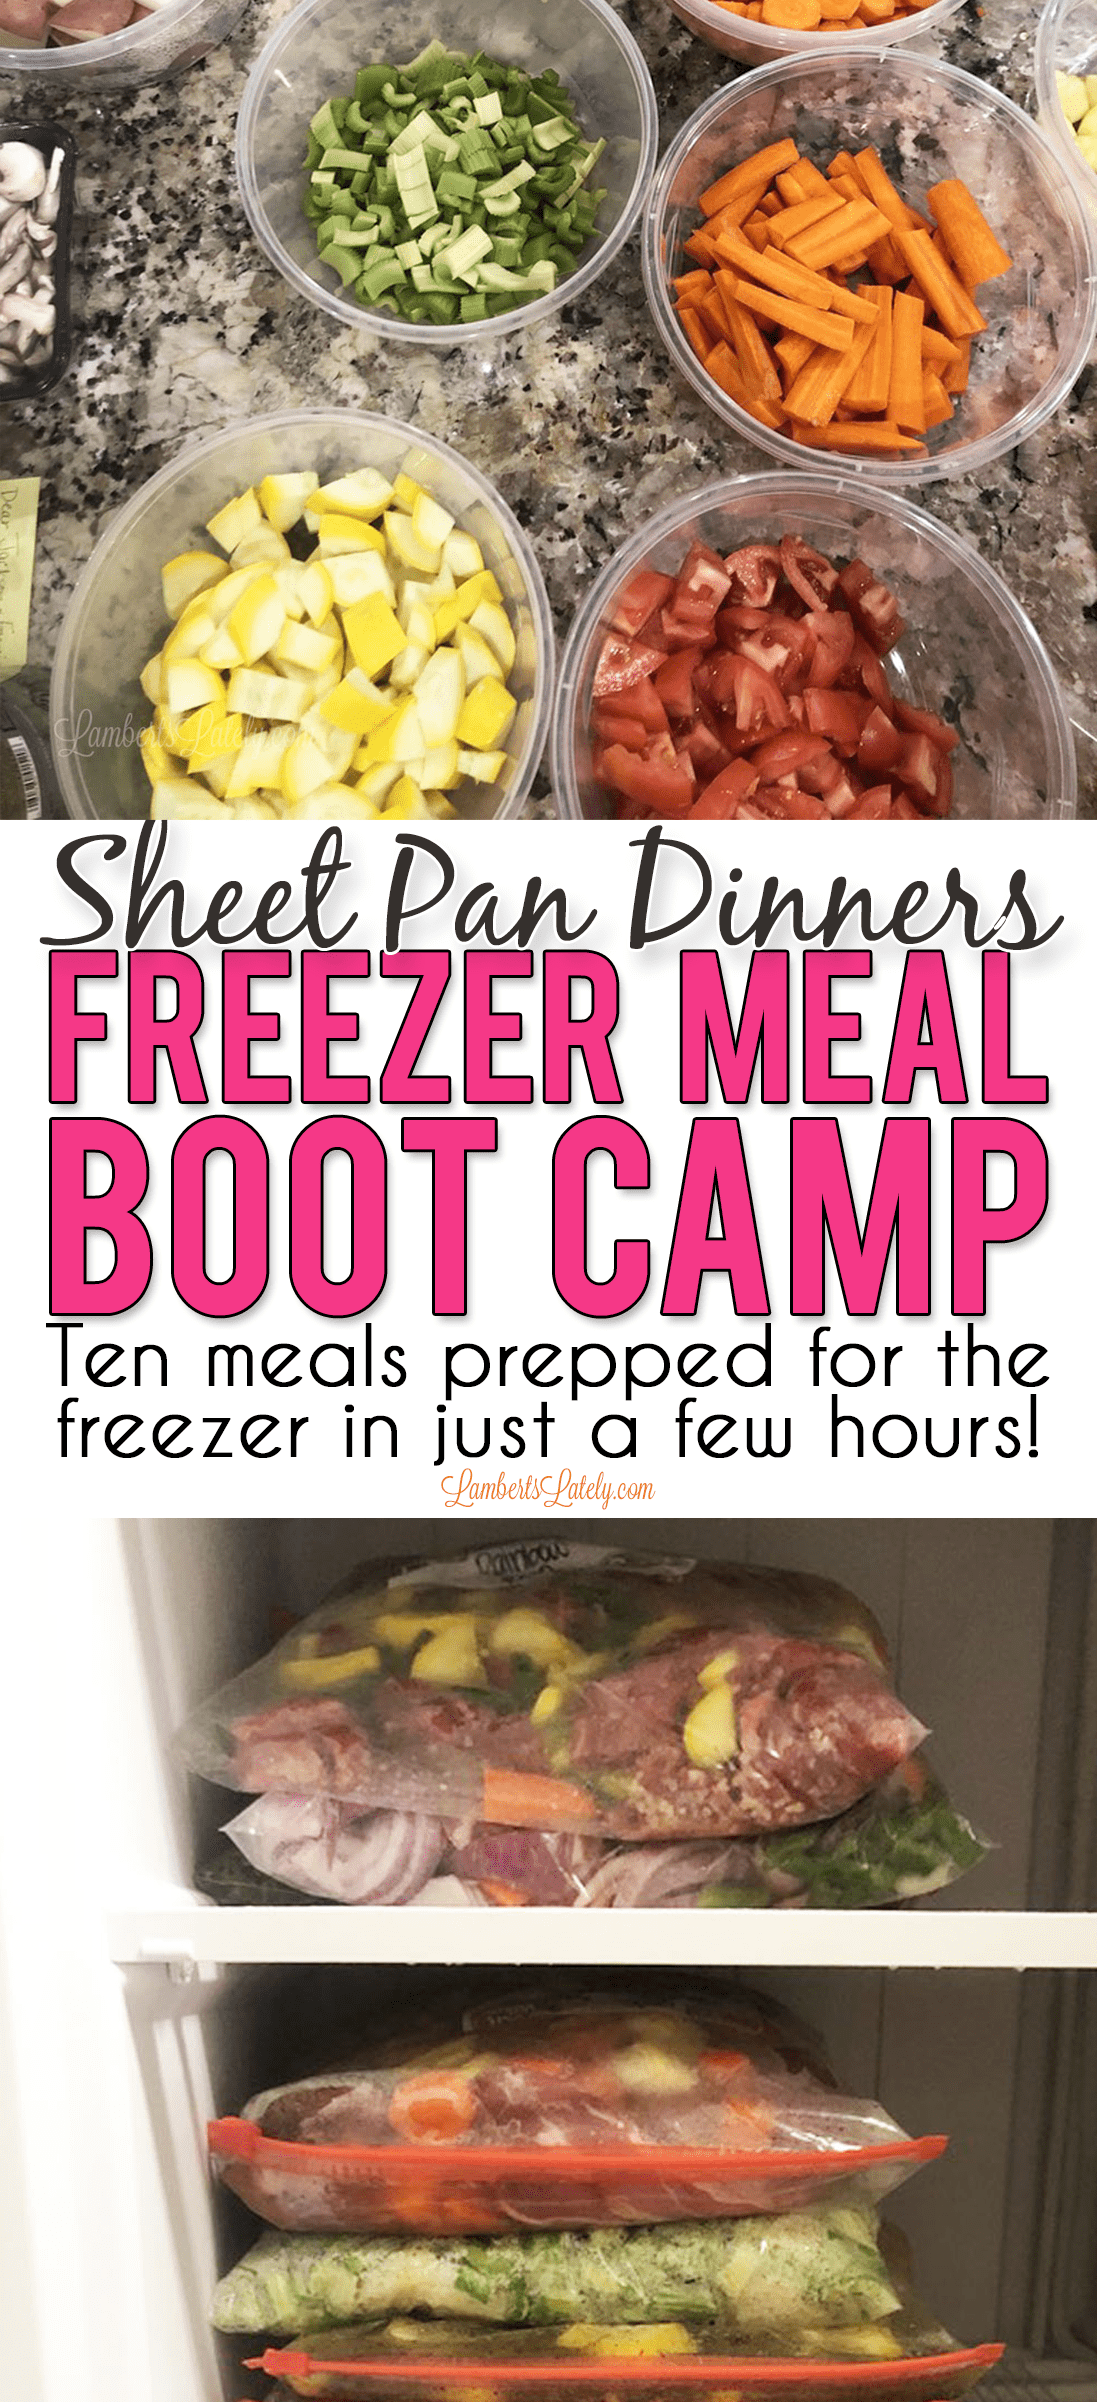 Sheet Pan Dinners Freezer Meal Boot Camp has 10 delicious sheet pan recipes combined into one meal prep session. Includes recipes for chicken, steak, pork, and more - there are even free bag labels and recipe card printables!